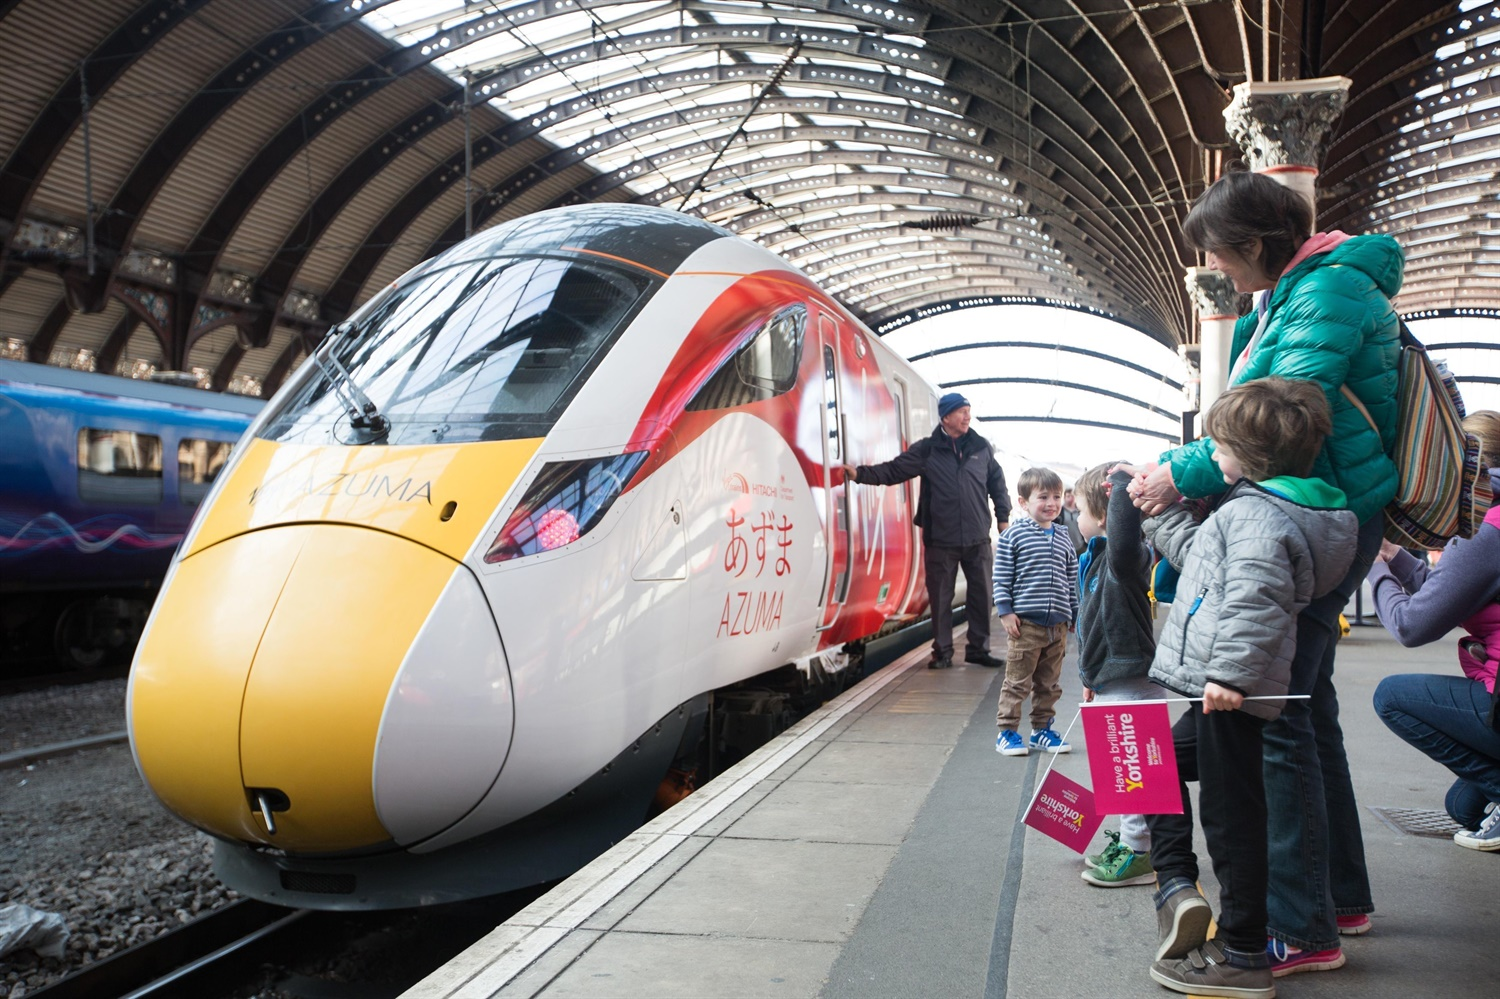 Still no date given for Azuma rollout on ECML by DfT